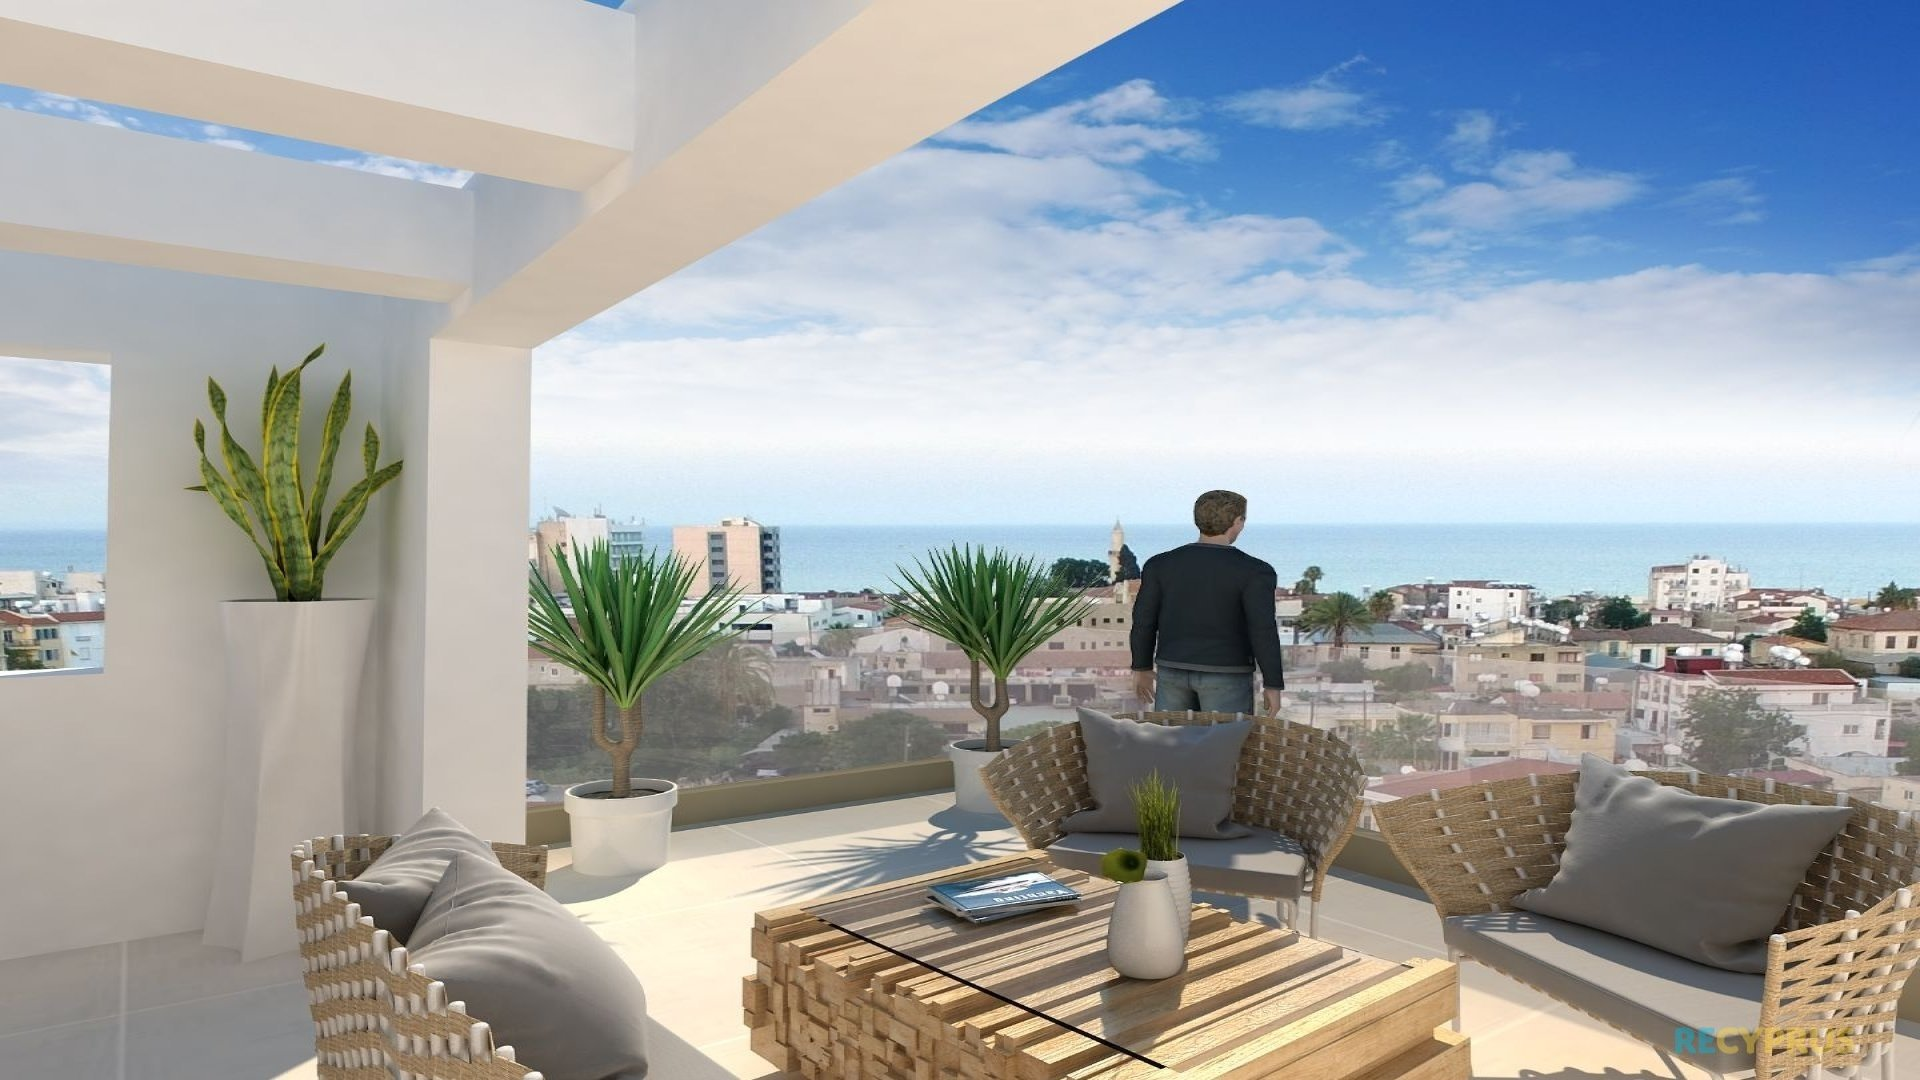 Apartment for sale City Center Larnaca Cyprus 9 3595